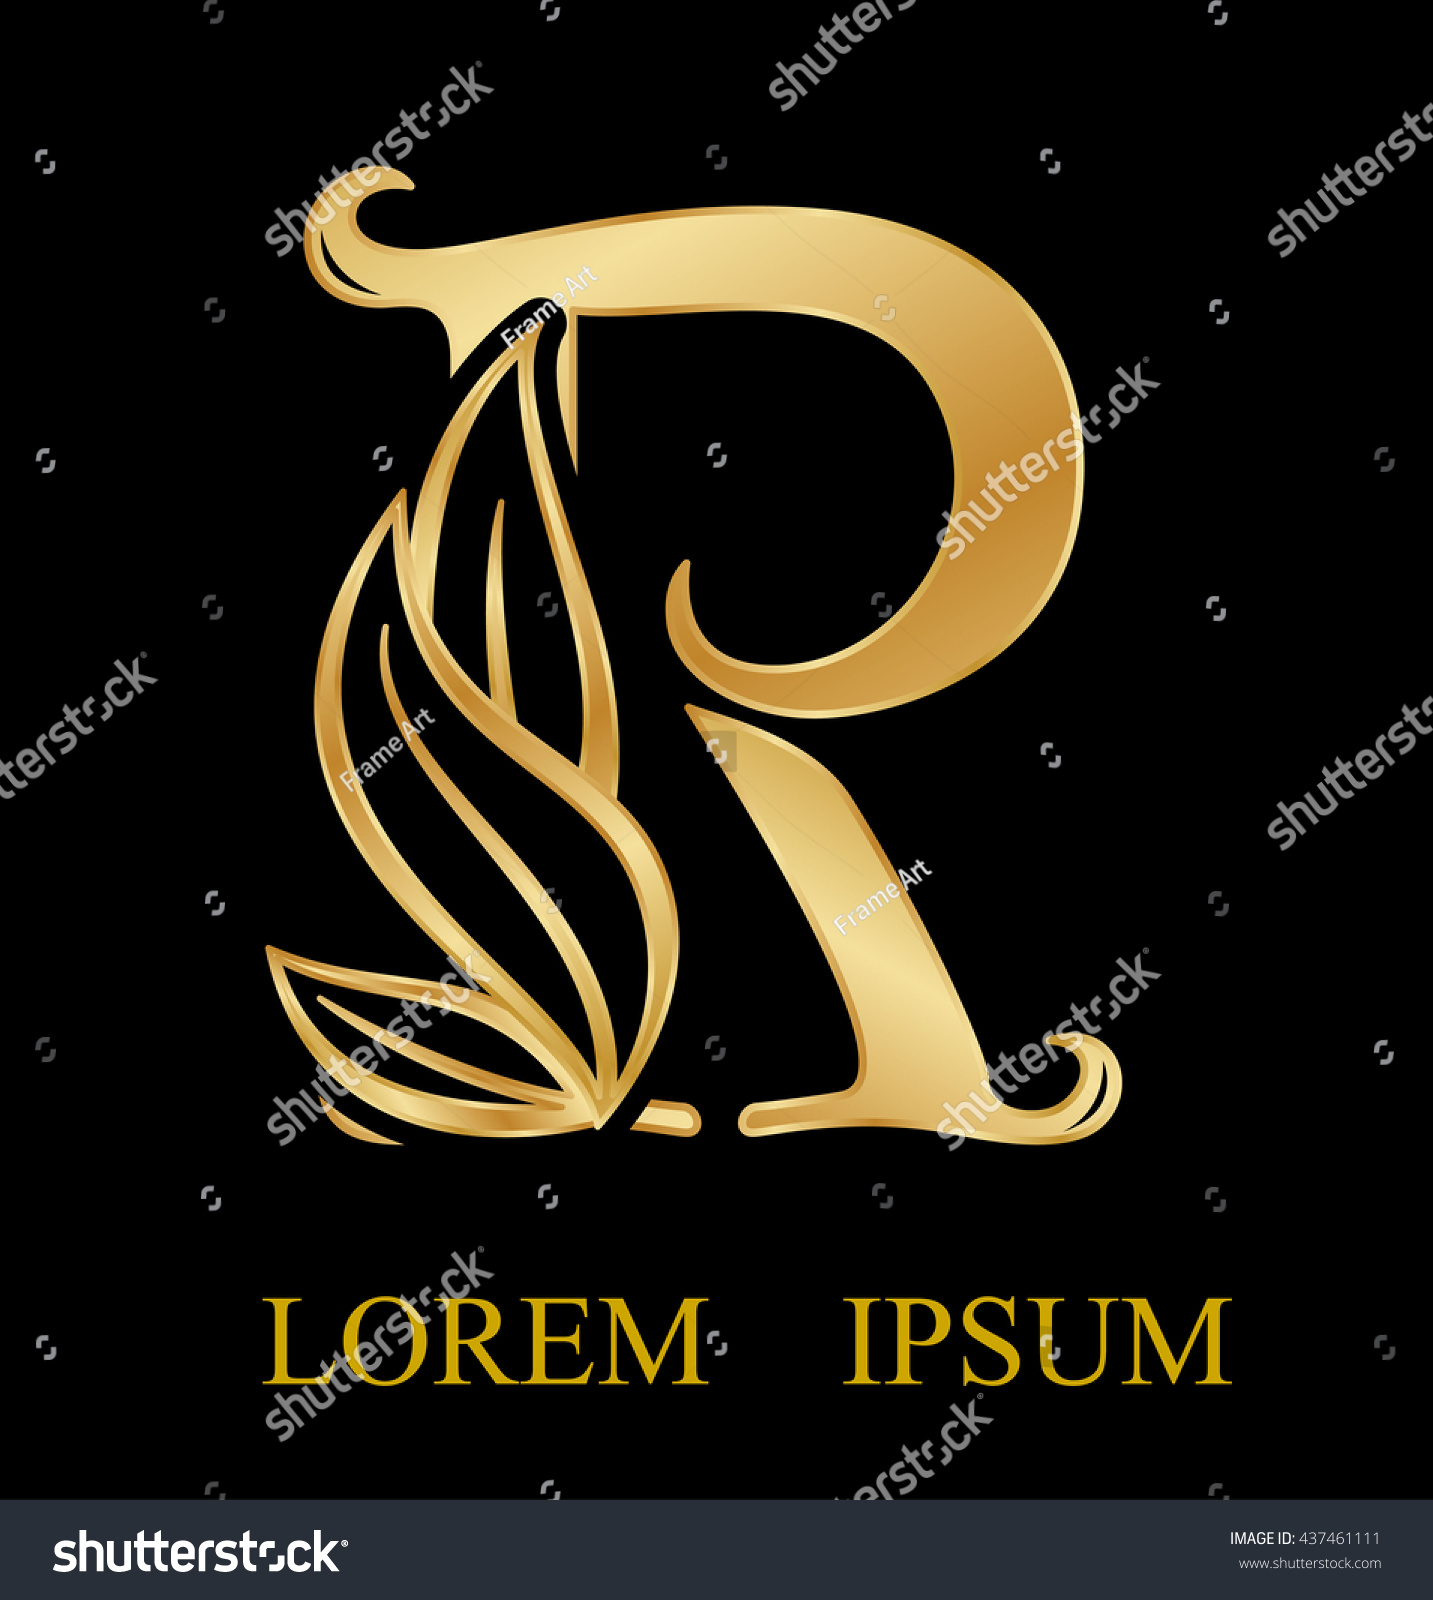 Royalty free abstract letter r logo designgold 437461111 stock abstract letter r logo designgold beauty industry and fashion logosmetics business thecheapjerseys Images